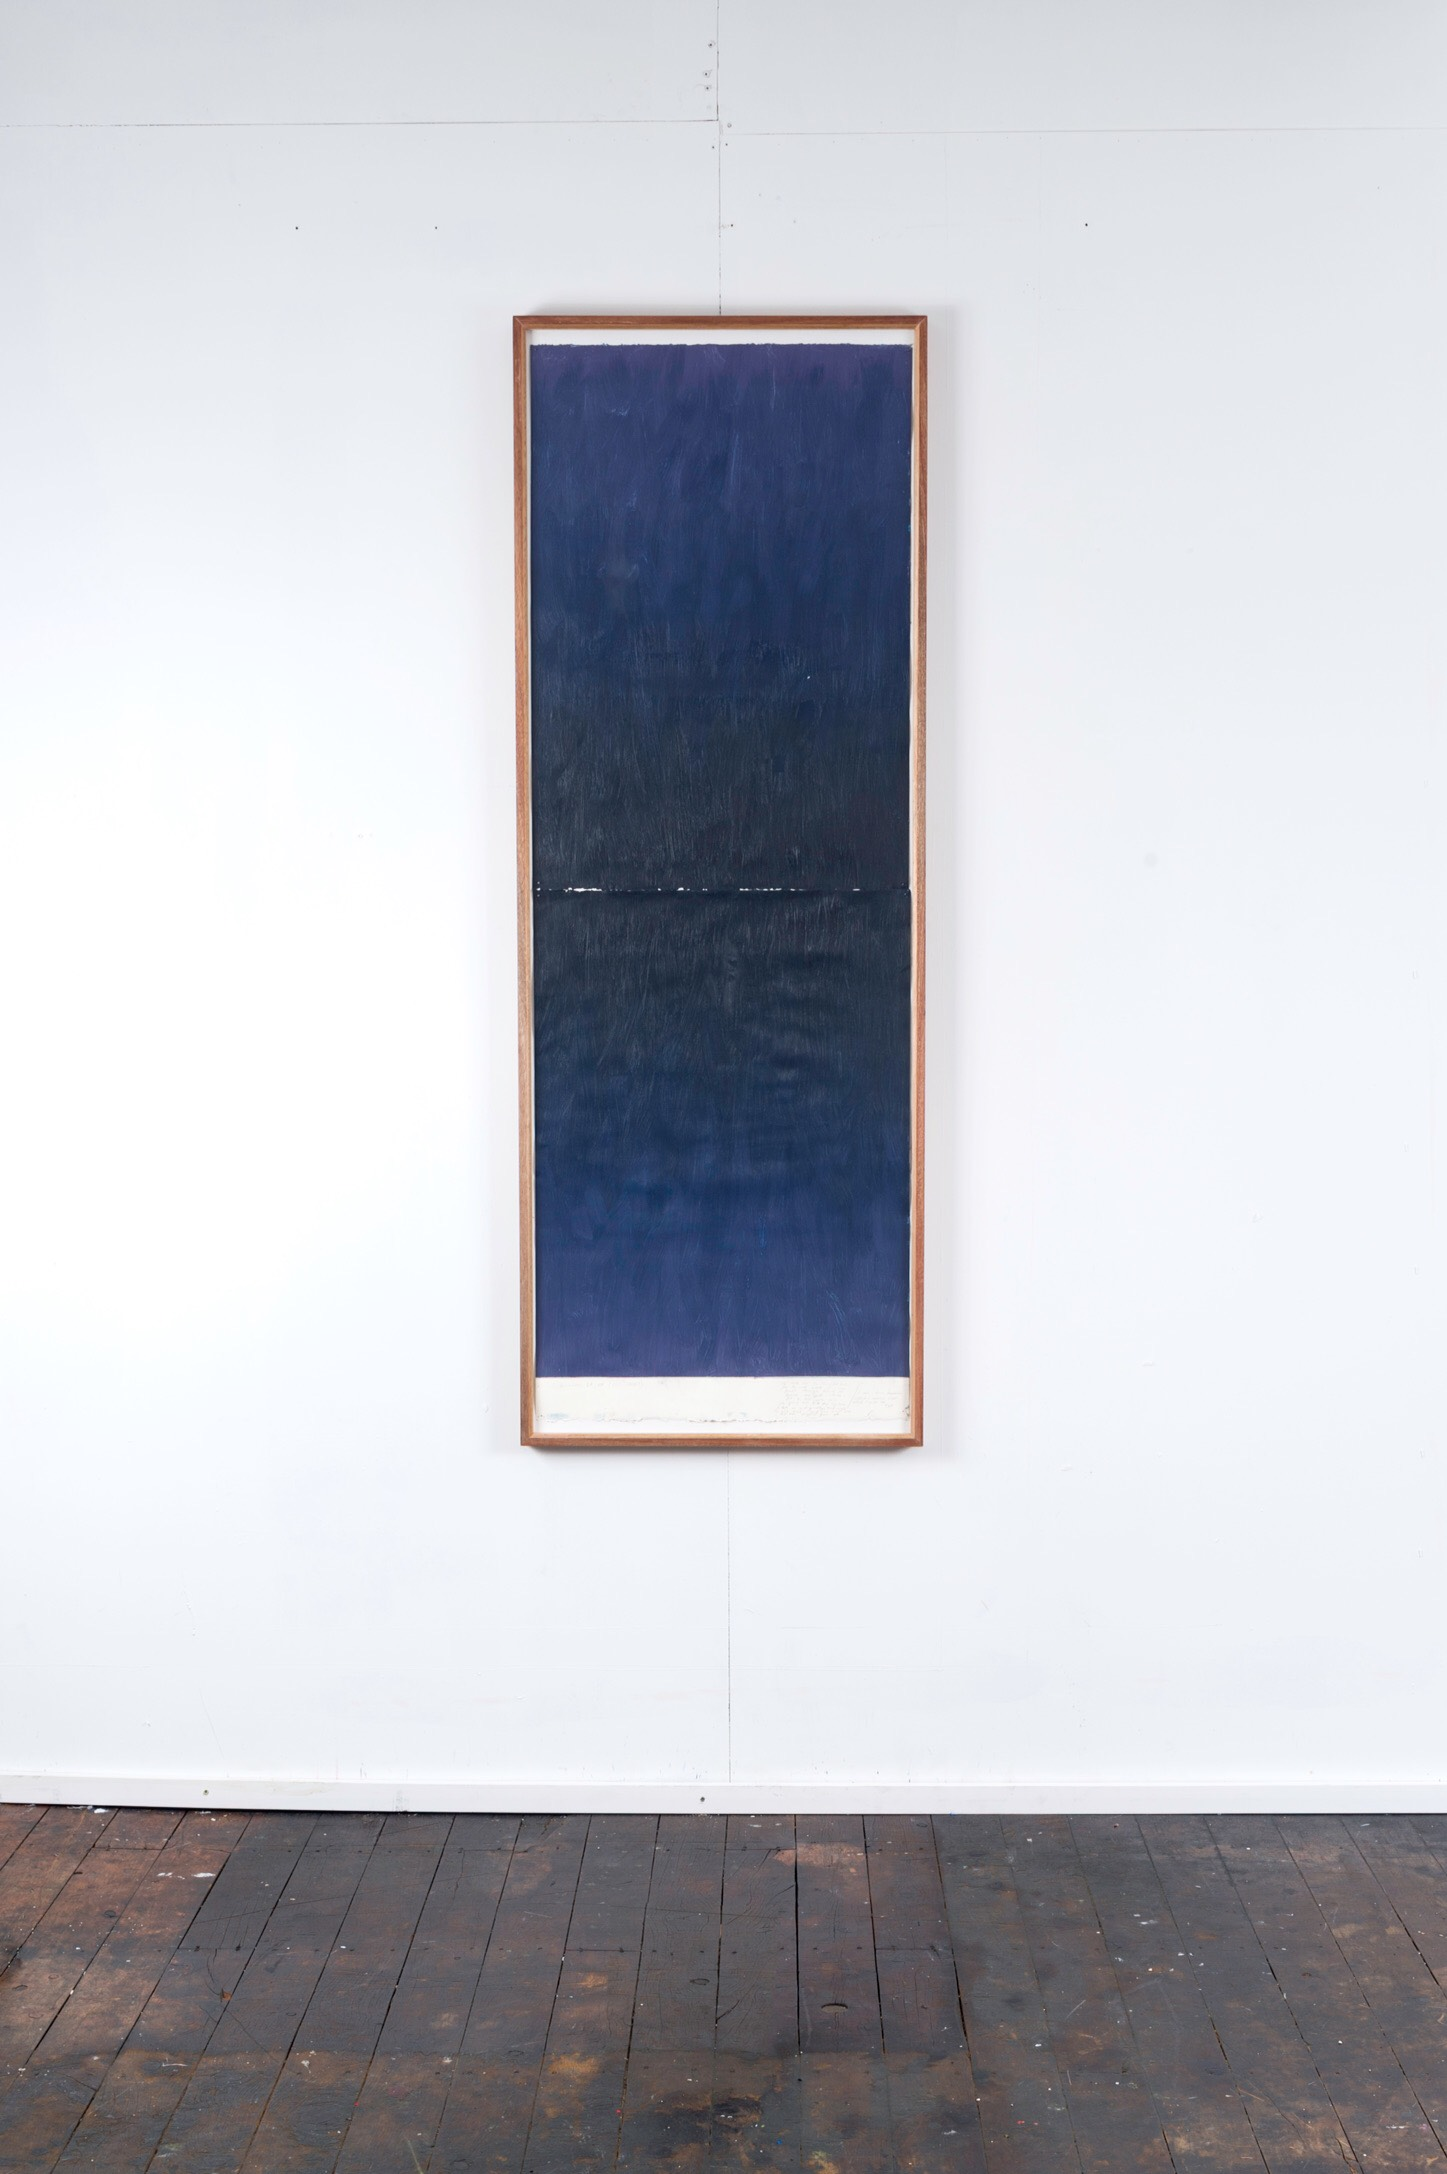 RH 264 Downtown, LA (2317 28021216) , 2016  oil paint, synthetic polymer, marble dust, wax, cotton rag paper, Tasmanian Oak, Museum glass  161 x 58 x 4 cm